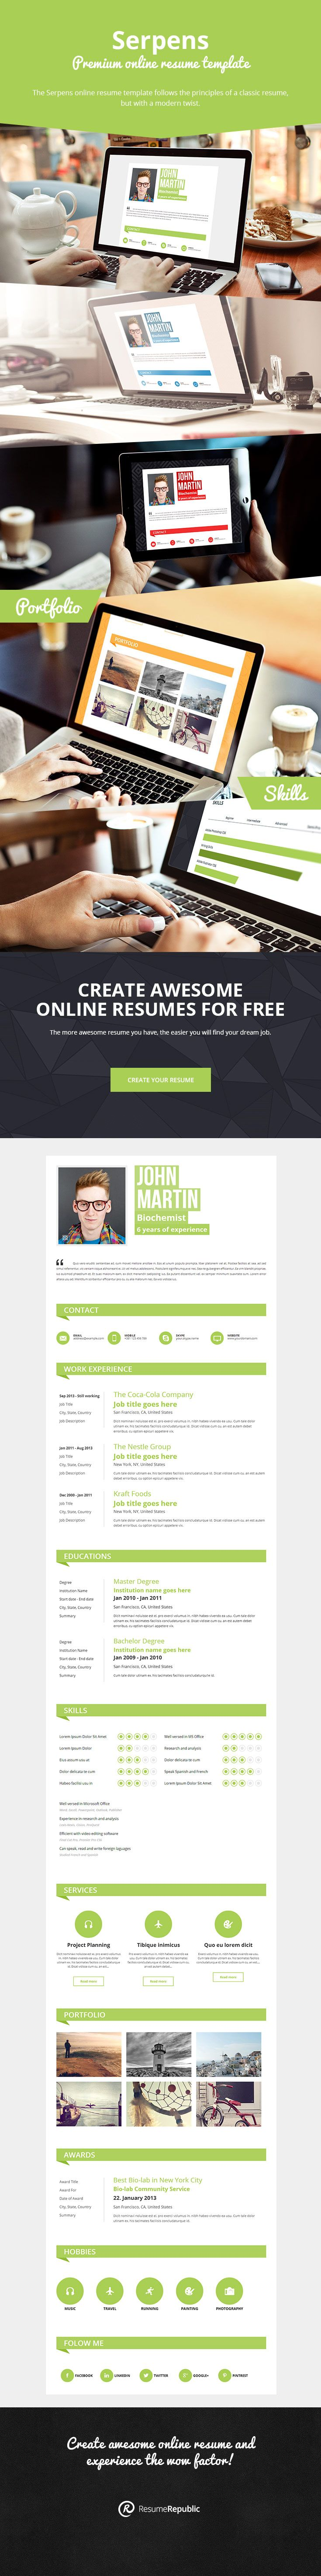 best ideas about online resume template serpens premium online resume template the serpens online resume template follows the principles of